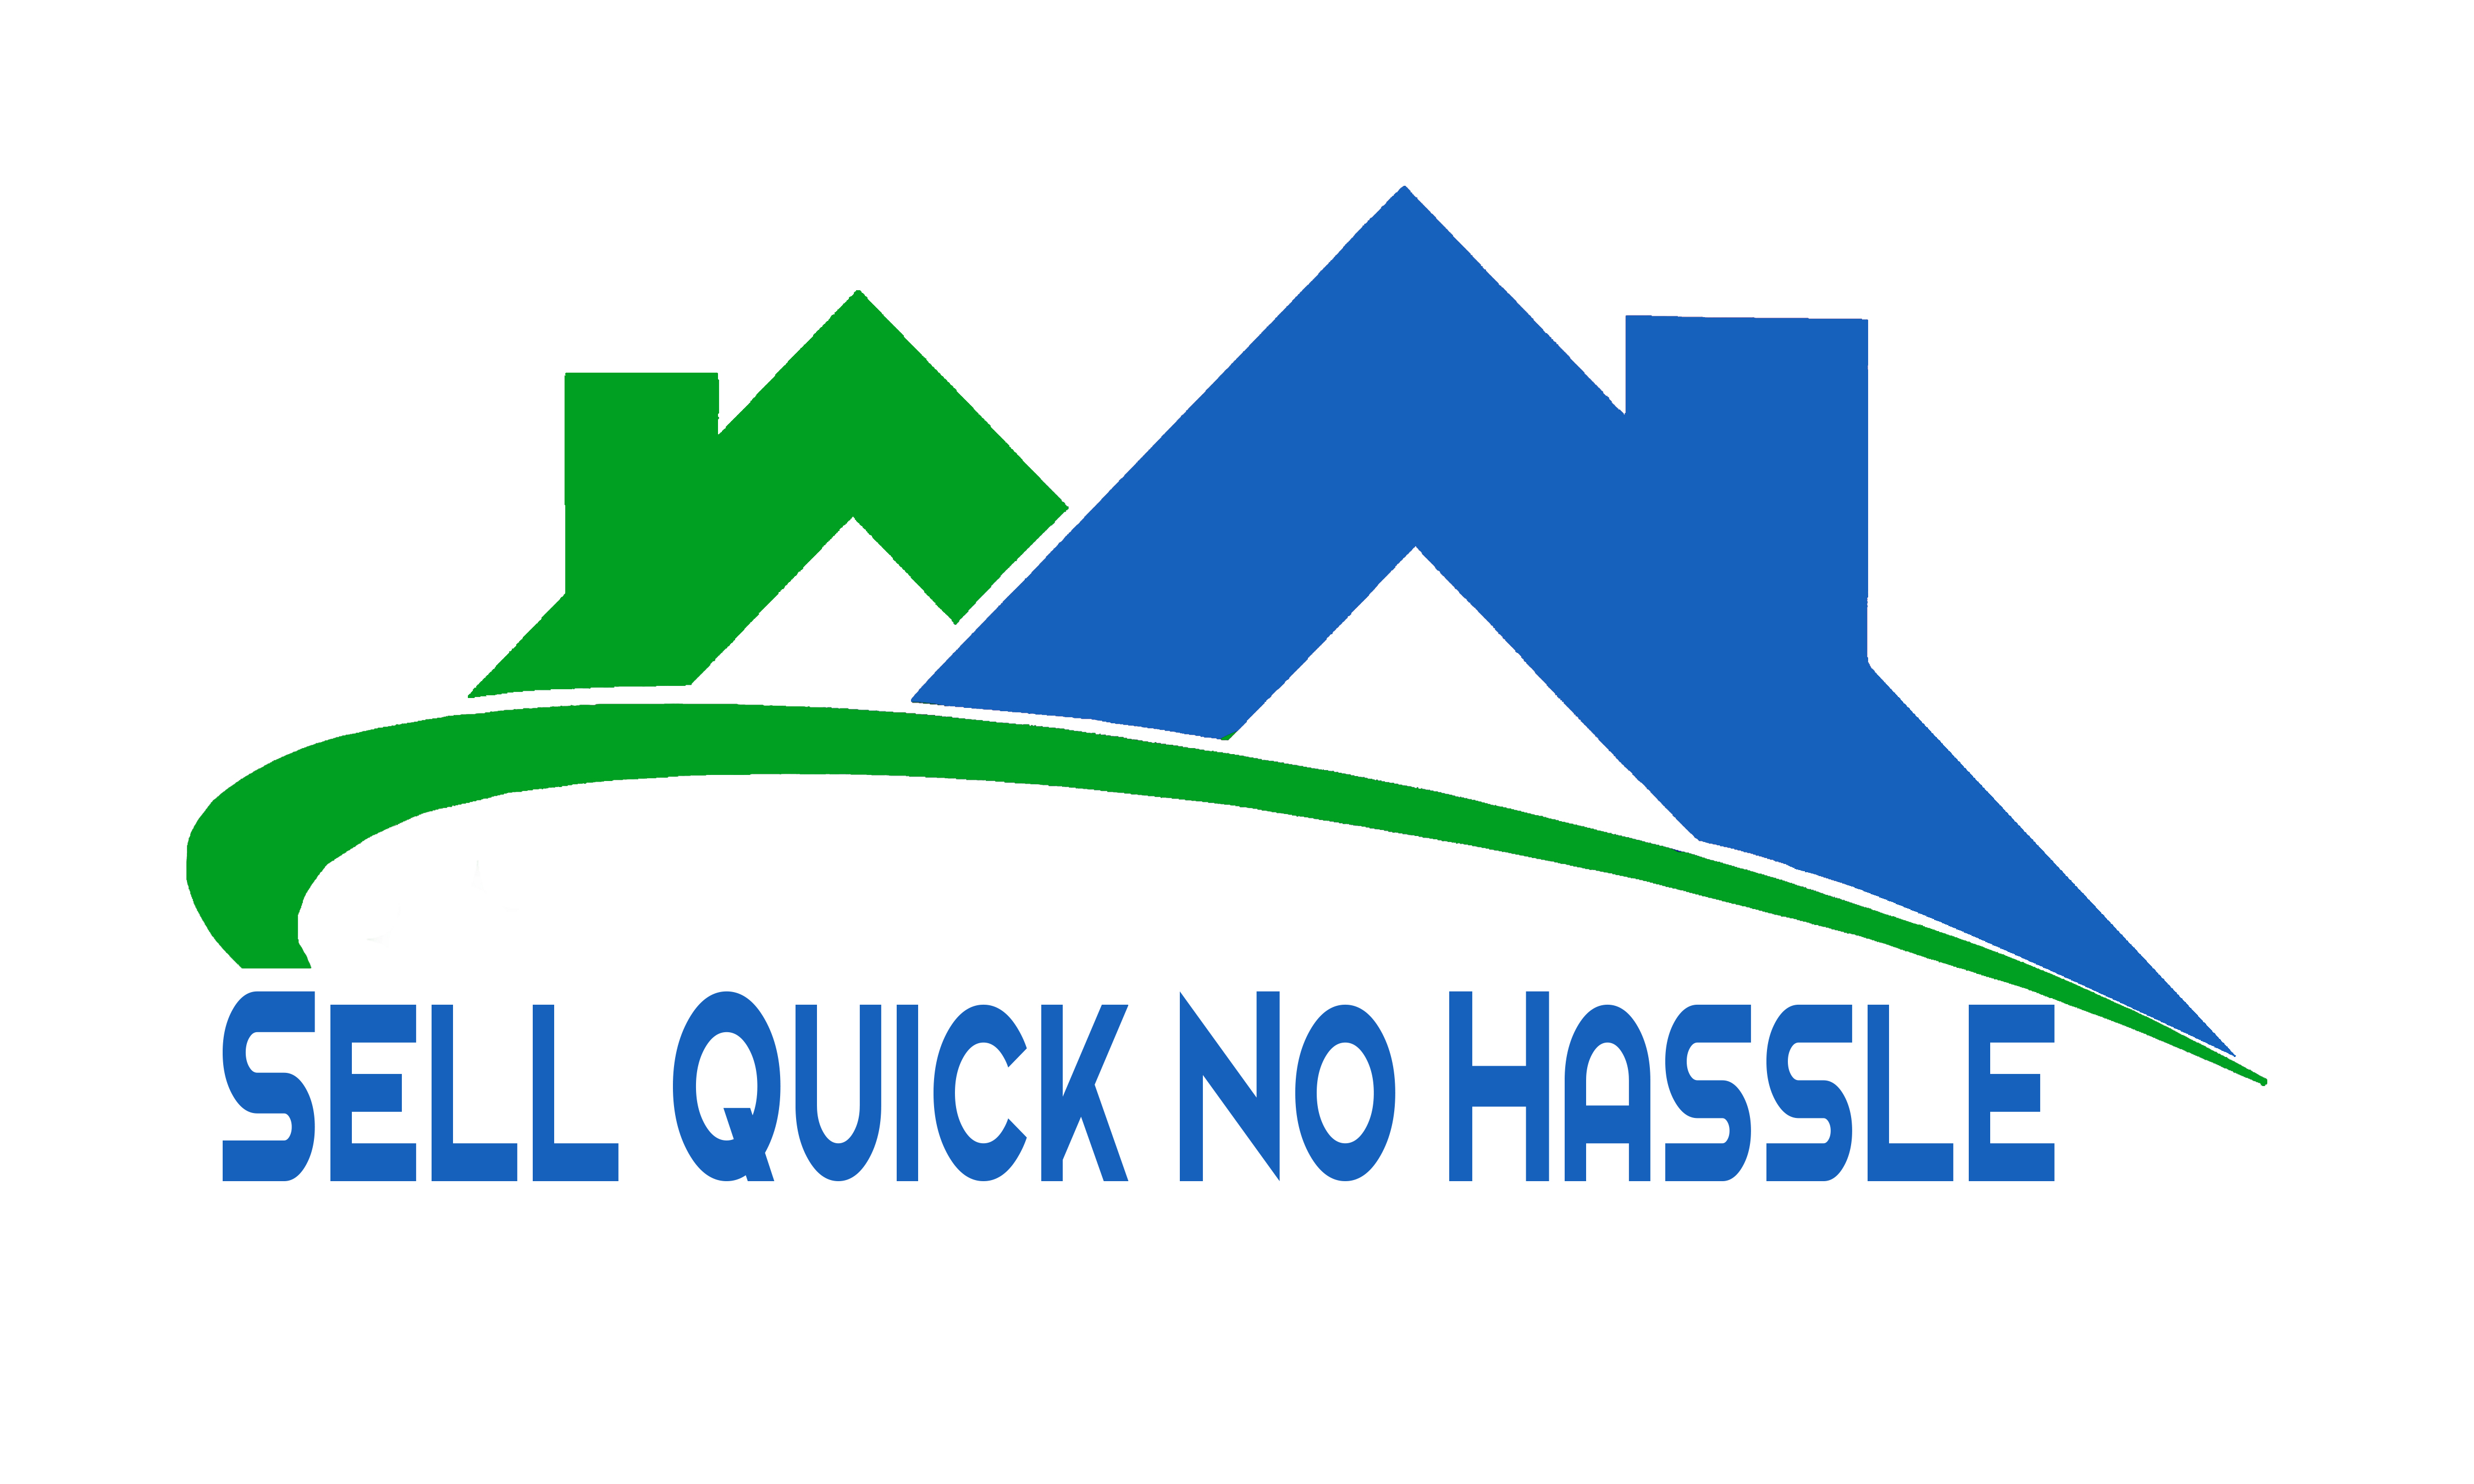 Sell_Quick_No_Hassle_2_1.jpg